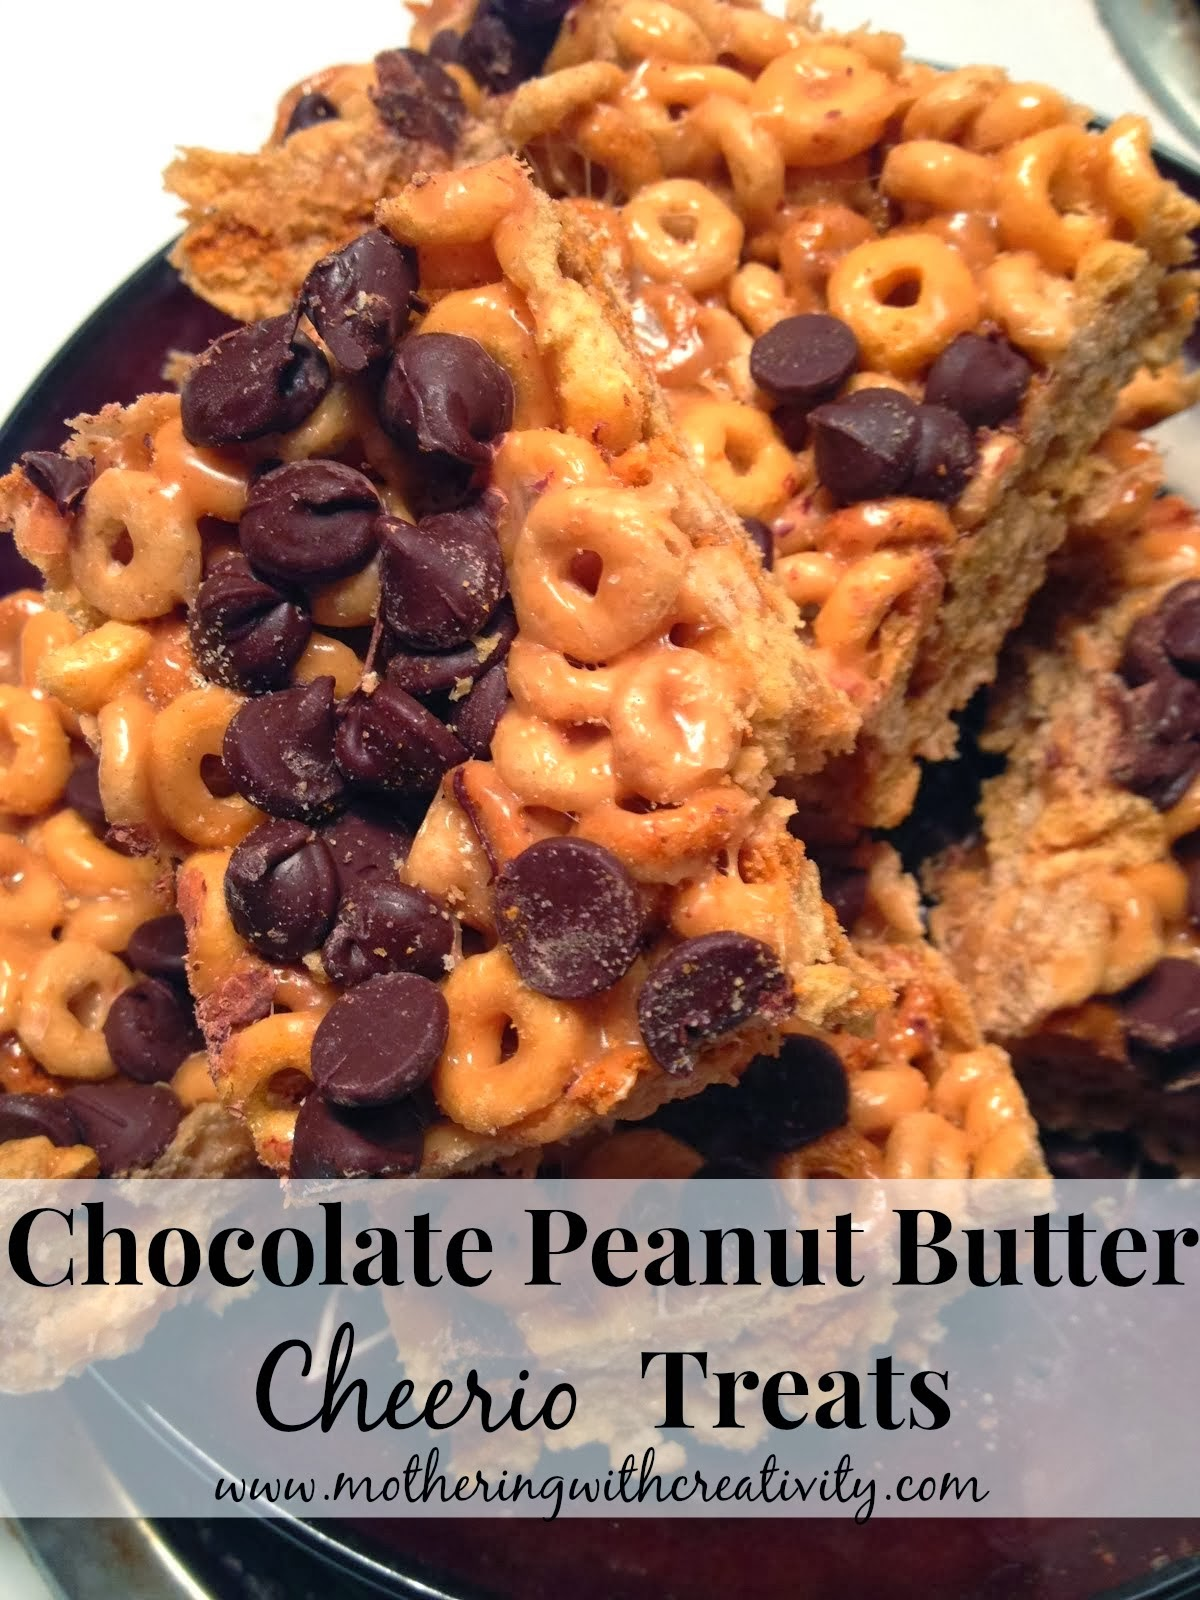 Mothering With Creativity Recipes